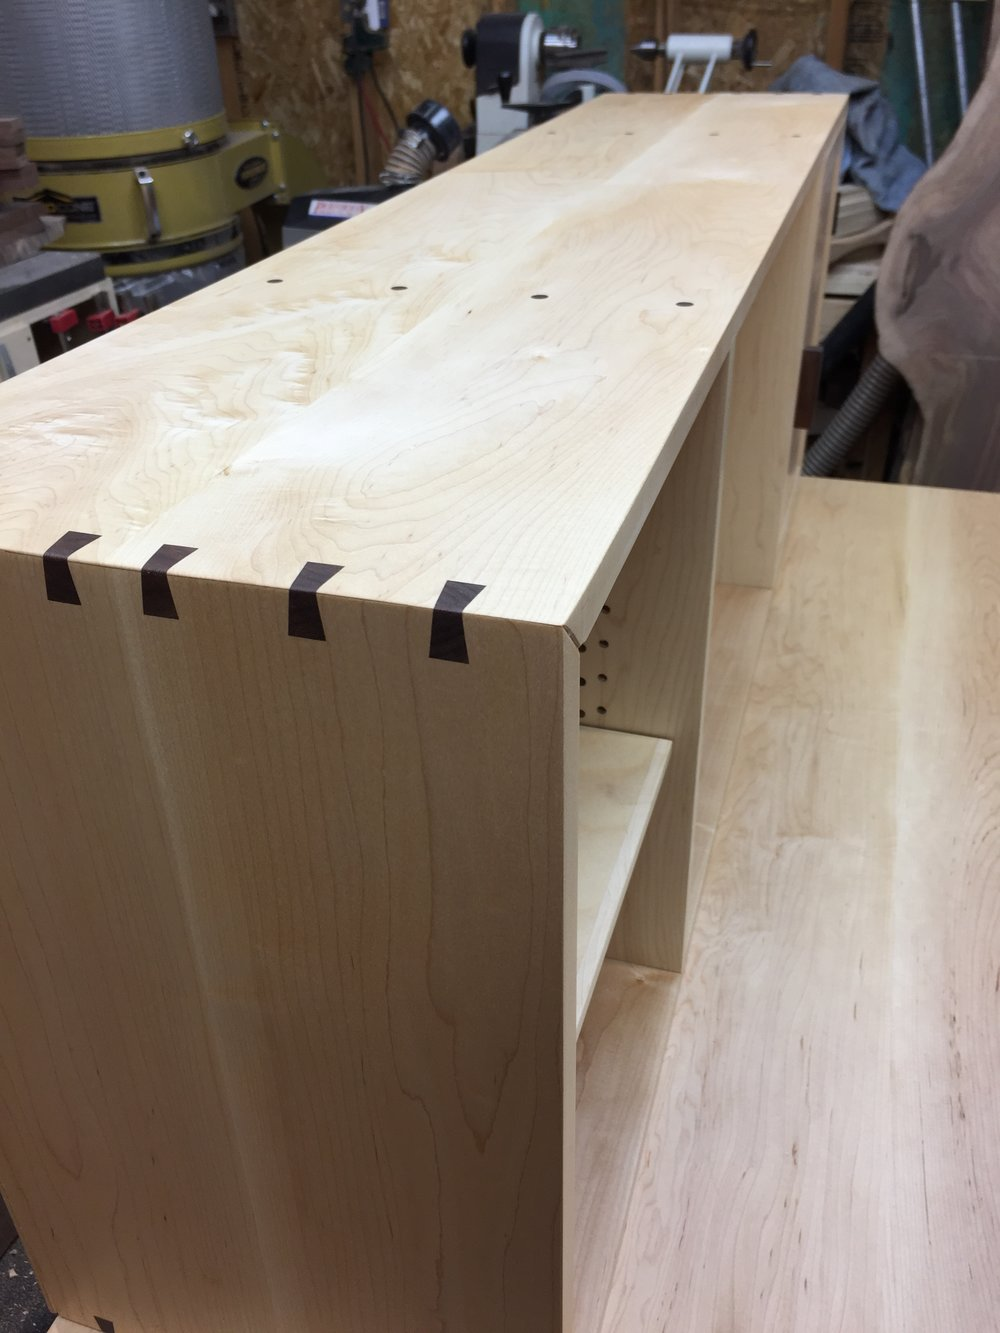 Walnut sliding dovetail splines, used to reinforce the miter joints.